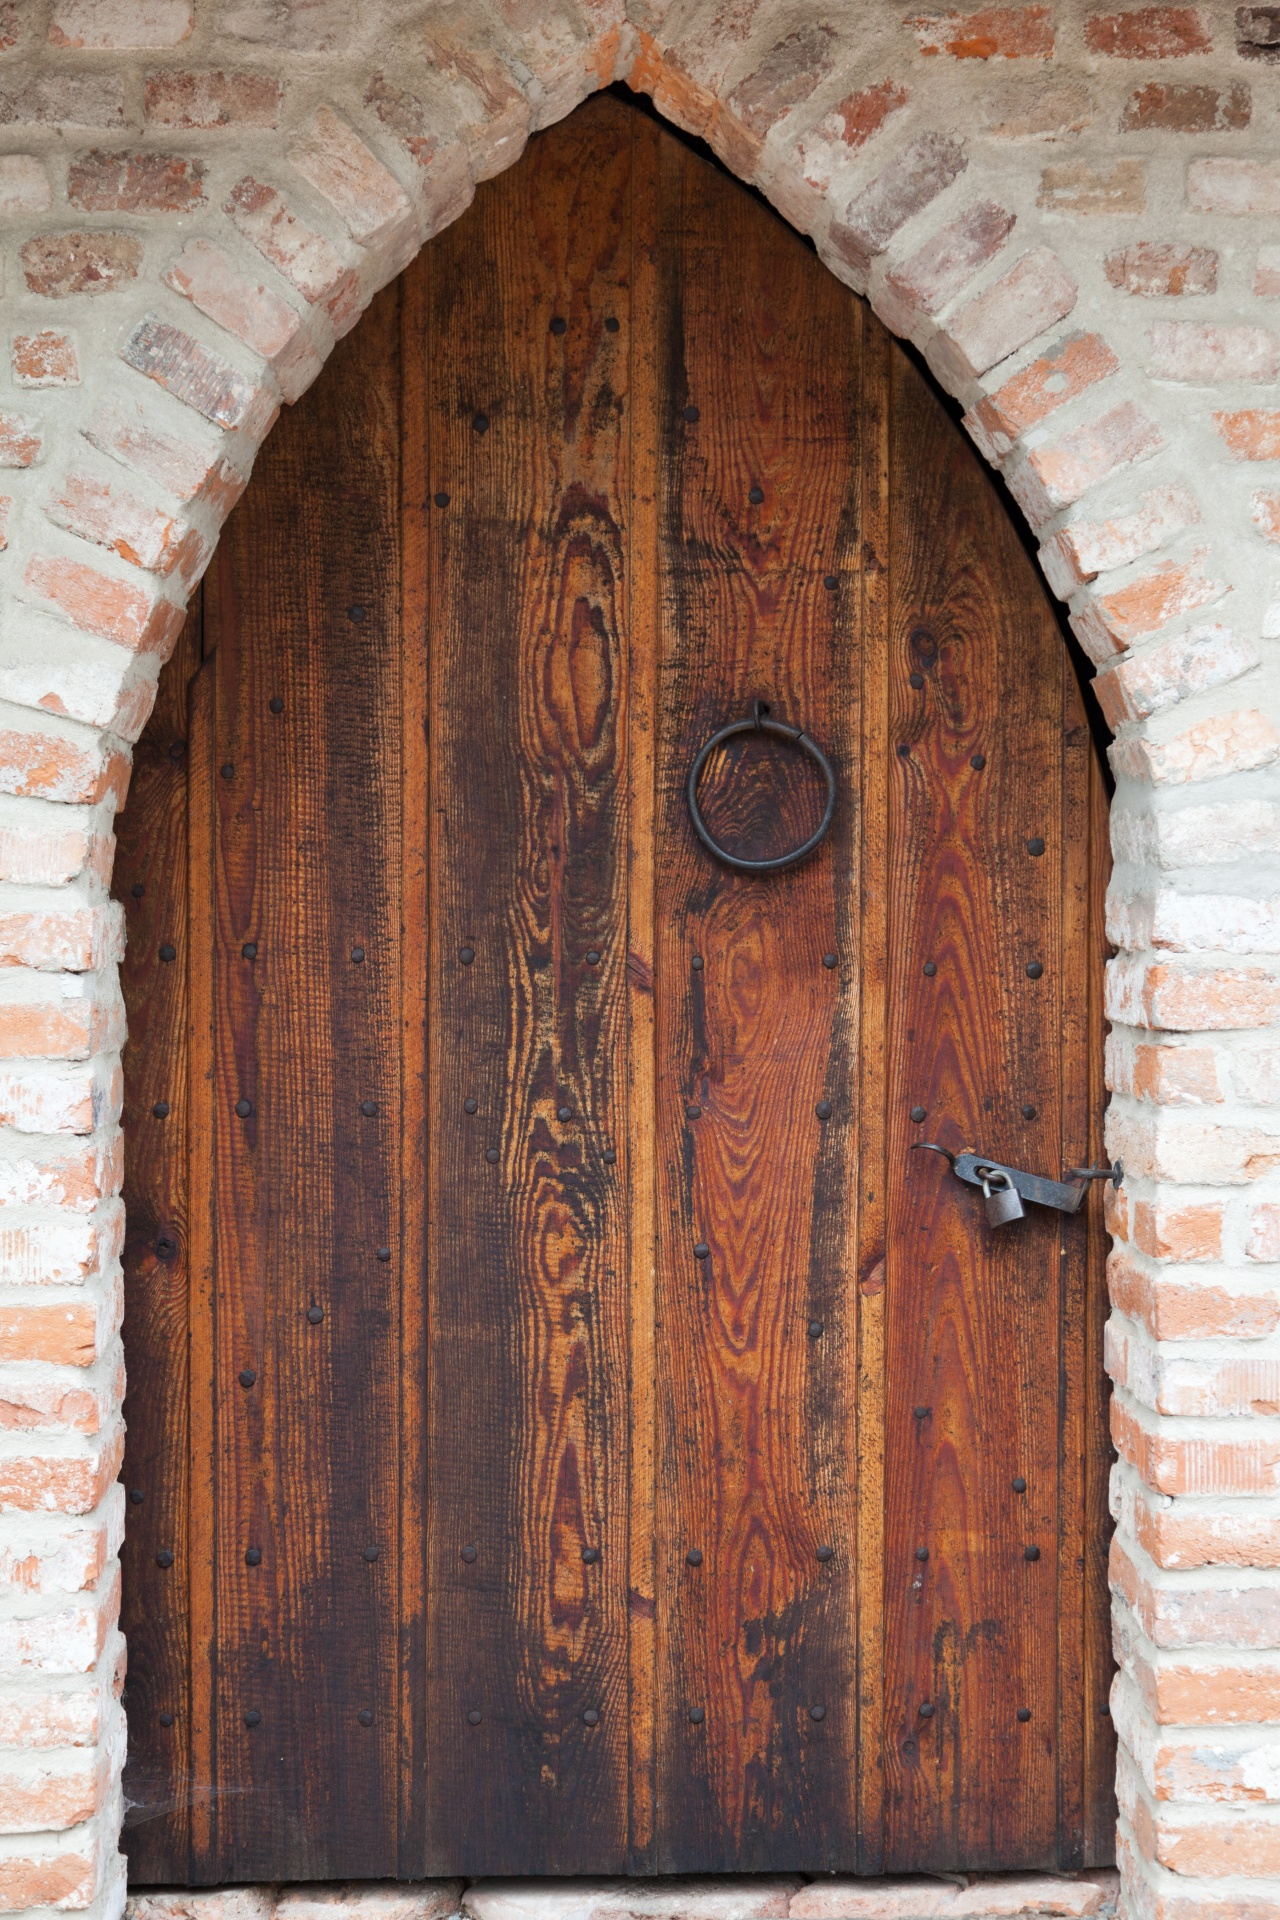 Le Meilleur Old Wooden Door Free Stock Photo Public Domain Pictures Ce Mois Ci